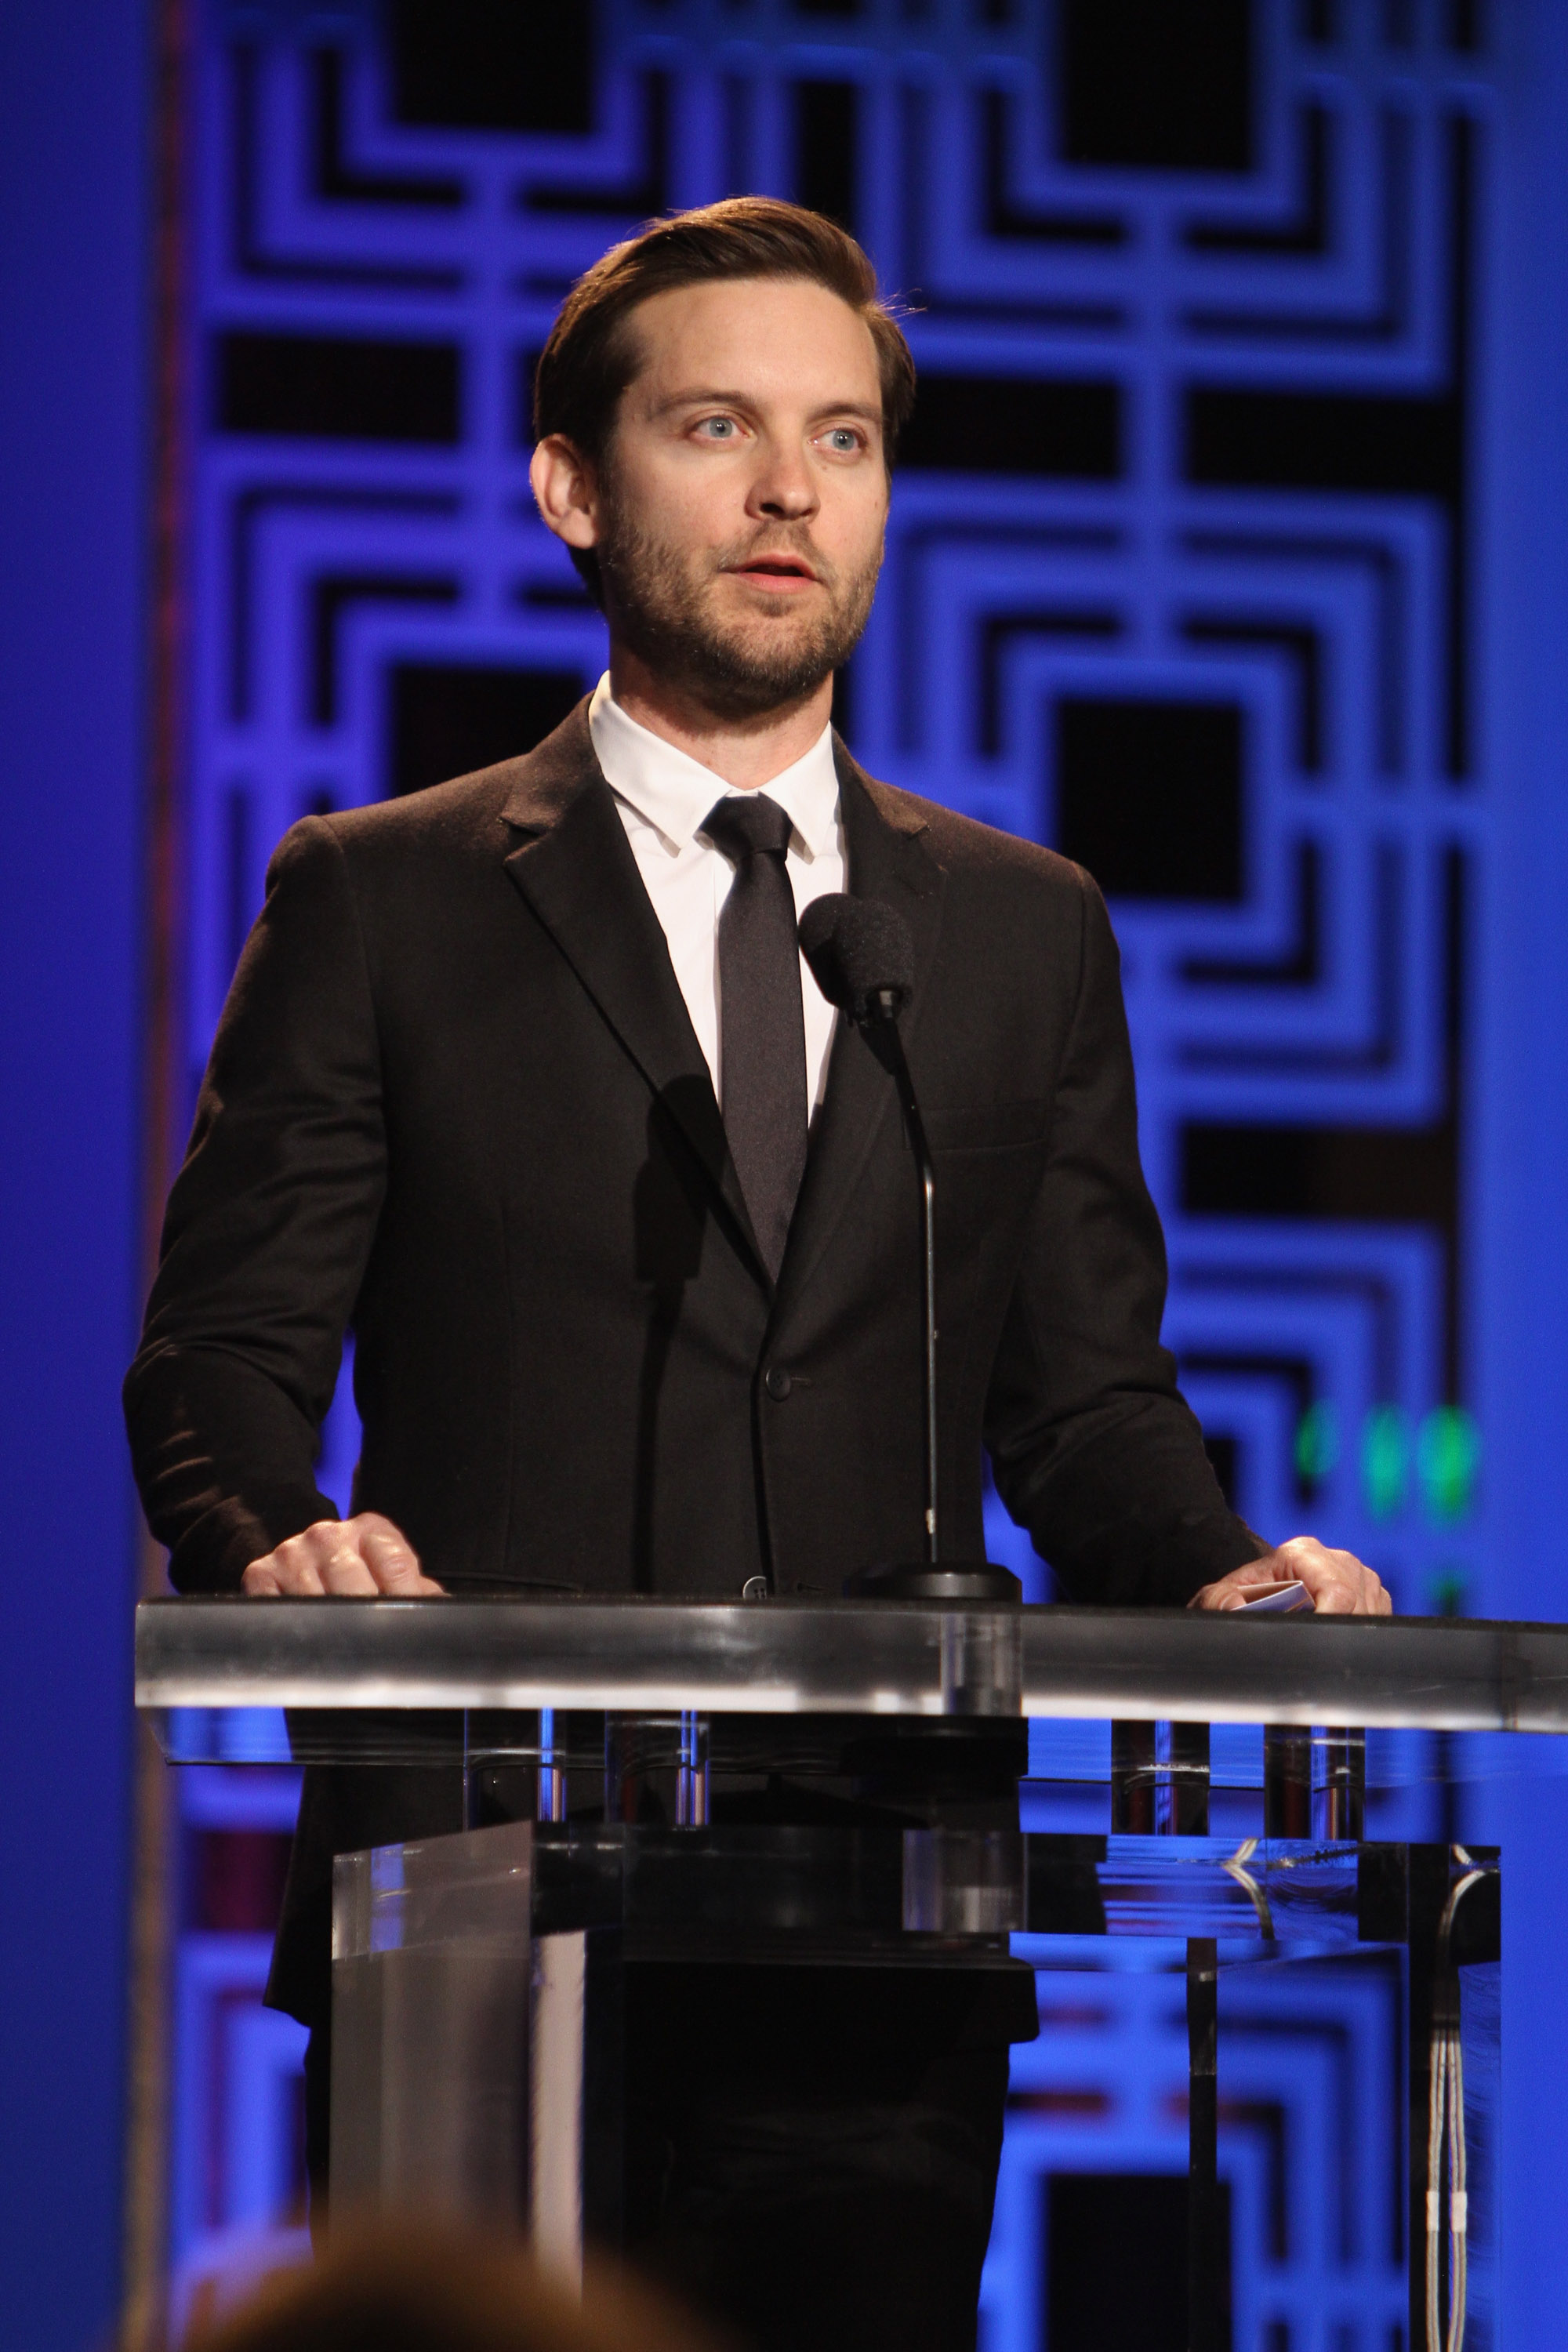 Tobey Maguire presented an award.